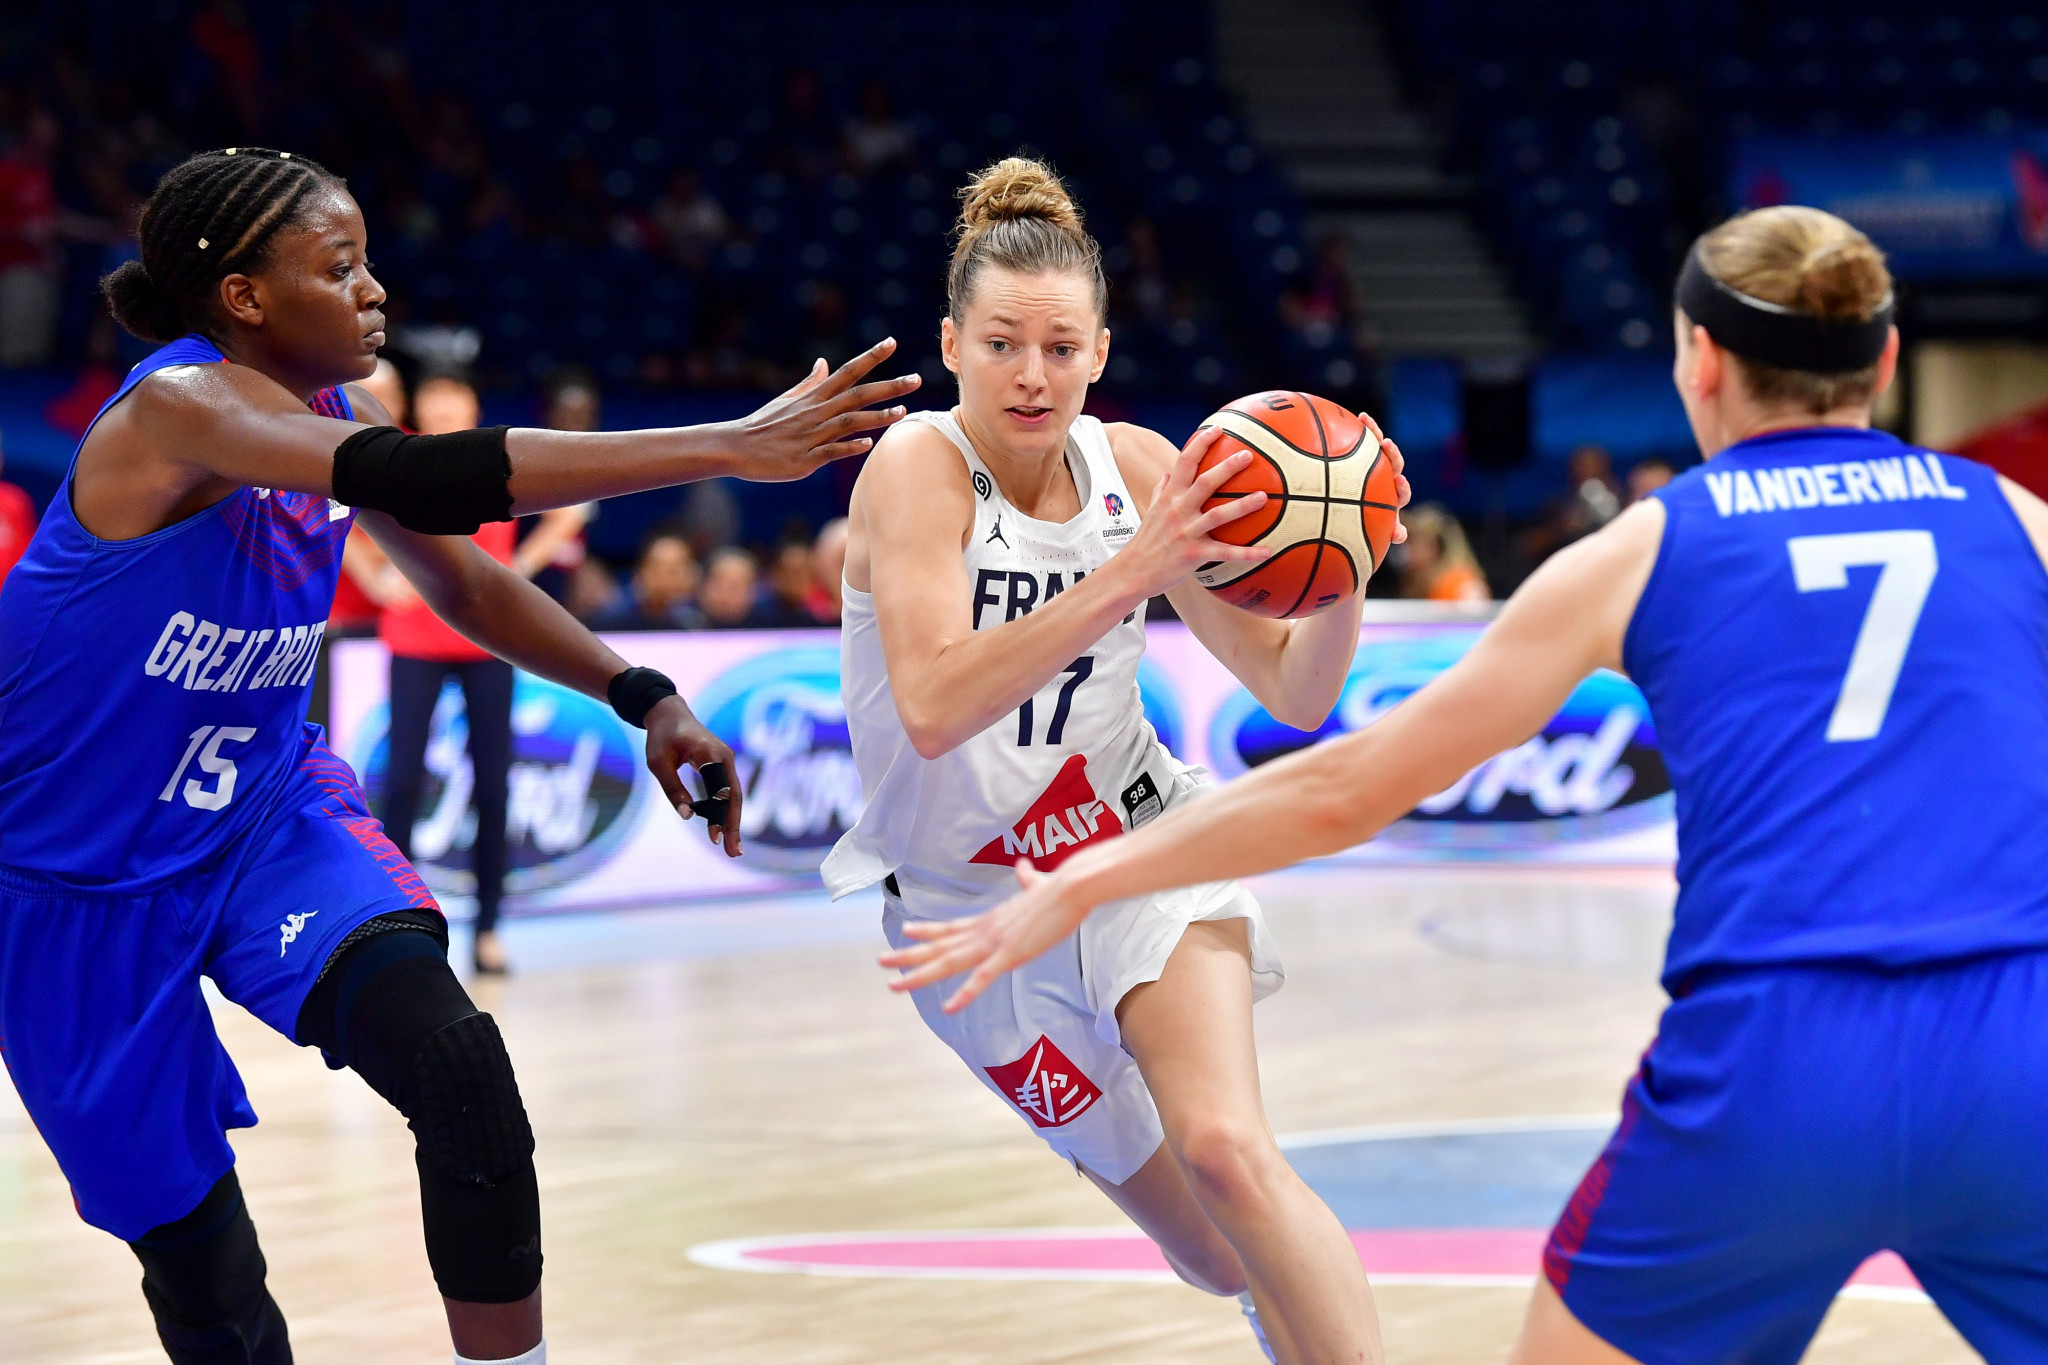 FIBA select cities to host COVID-19 secure bubbles for Women's EuroBasket 2021 qualifiers